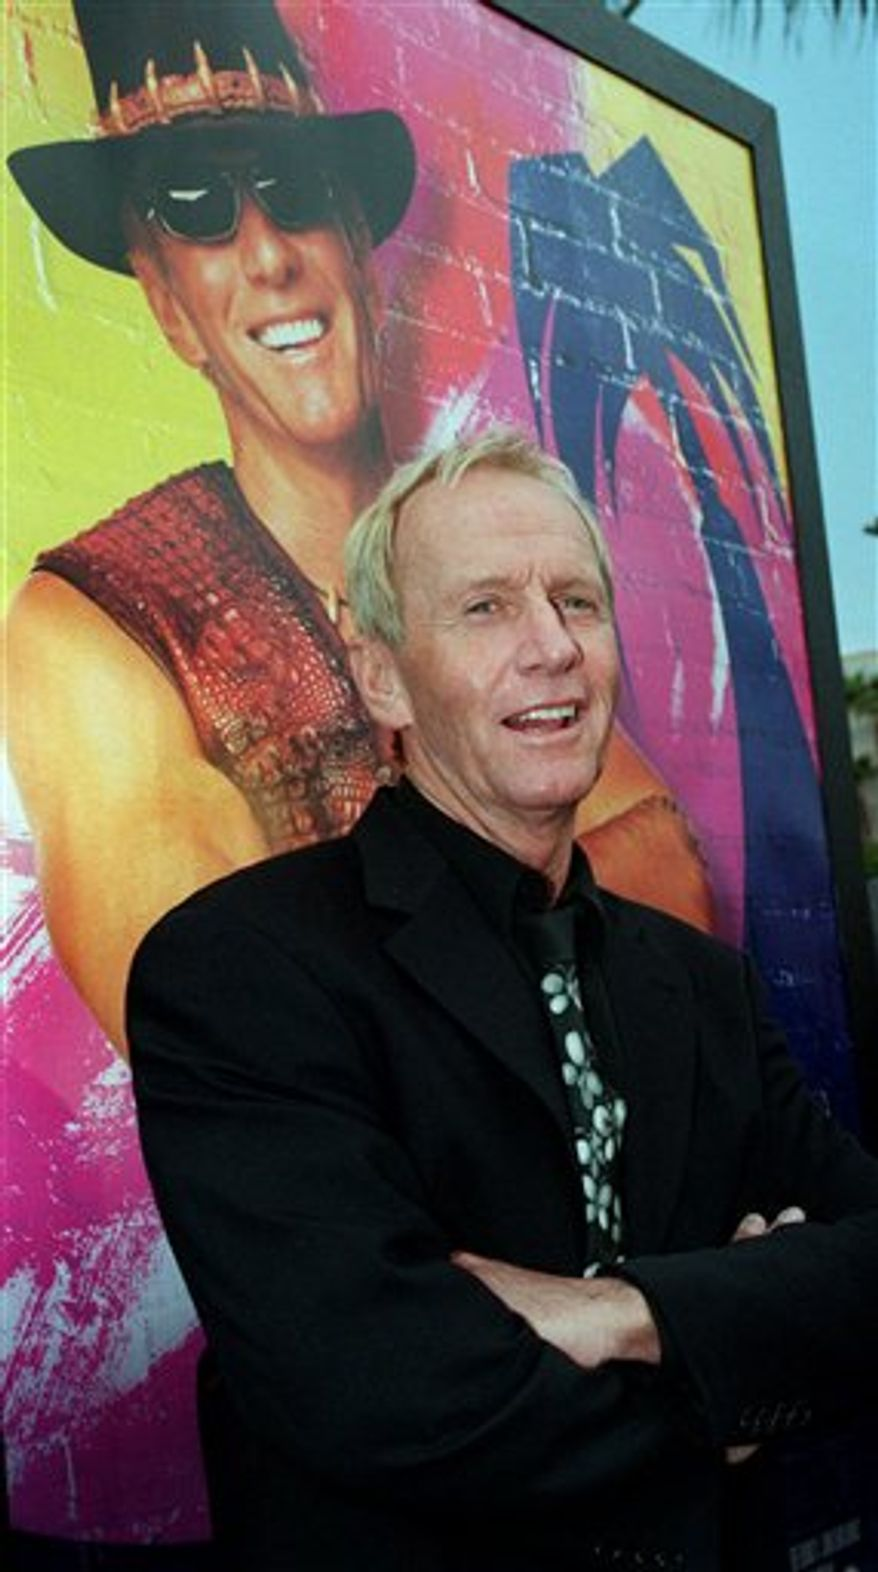 """In this April 18, 2001 file photo, Australian actor Paul Hogan, star of the """"Crocodile Dundee"""" movie trilogy, poses in front of a movie poster for """"Crocodile Dundee in Los Angeles,"""" at a screening of the movie, at the Paramount studios in Los Angeles, Calif. Hogan has been cleared to return home to the United States after he was barred last month from leaving Australia because of a disputed tax bill, his lawyer said Friday, Sept. 3, 2010. (AP Photo/Rene Macura, File)"""